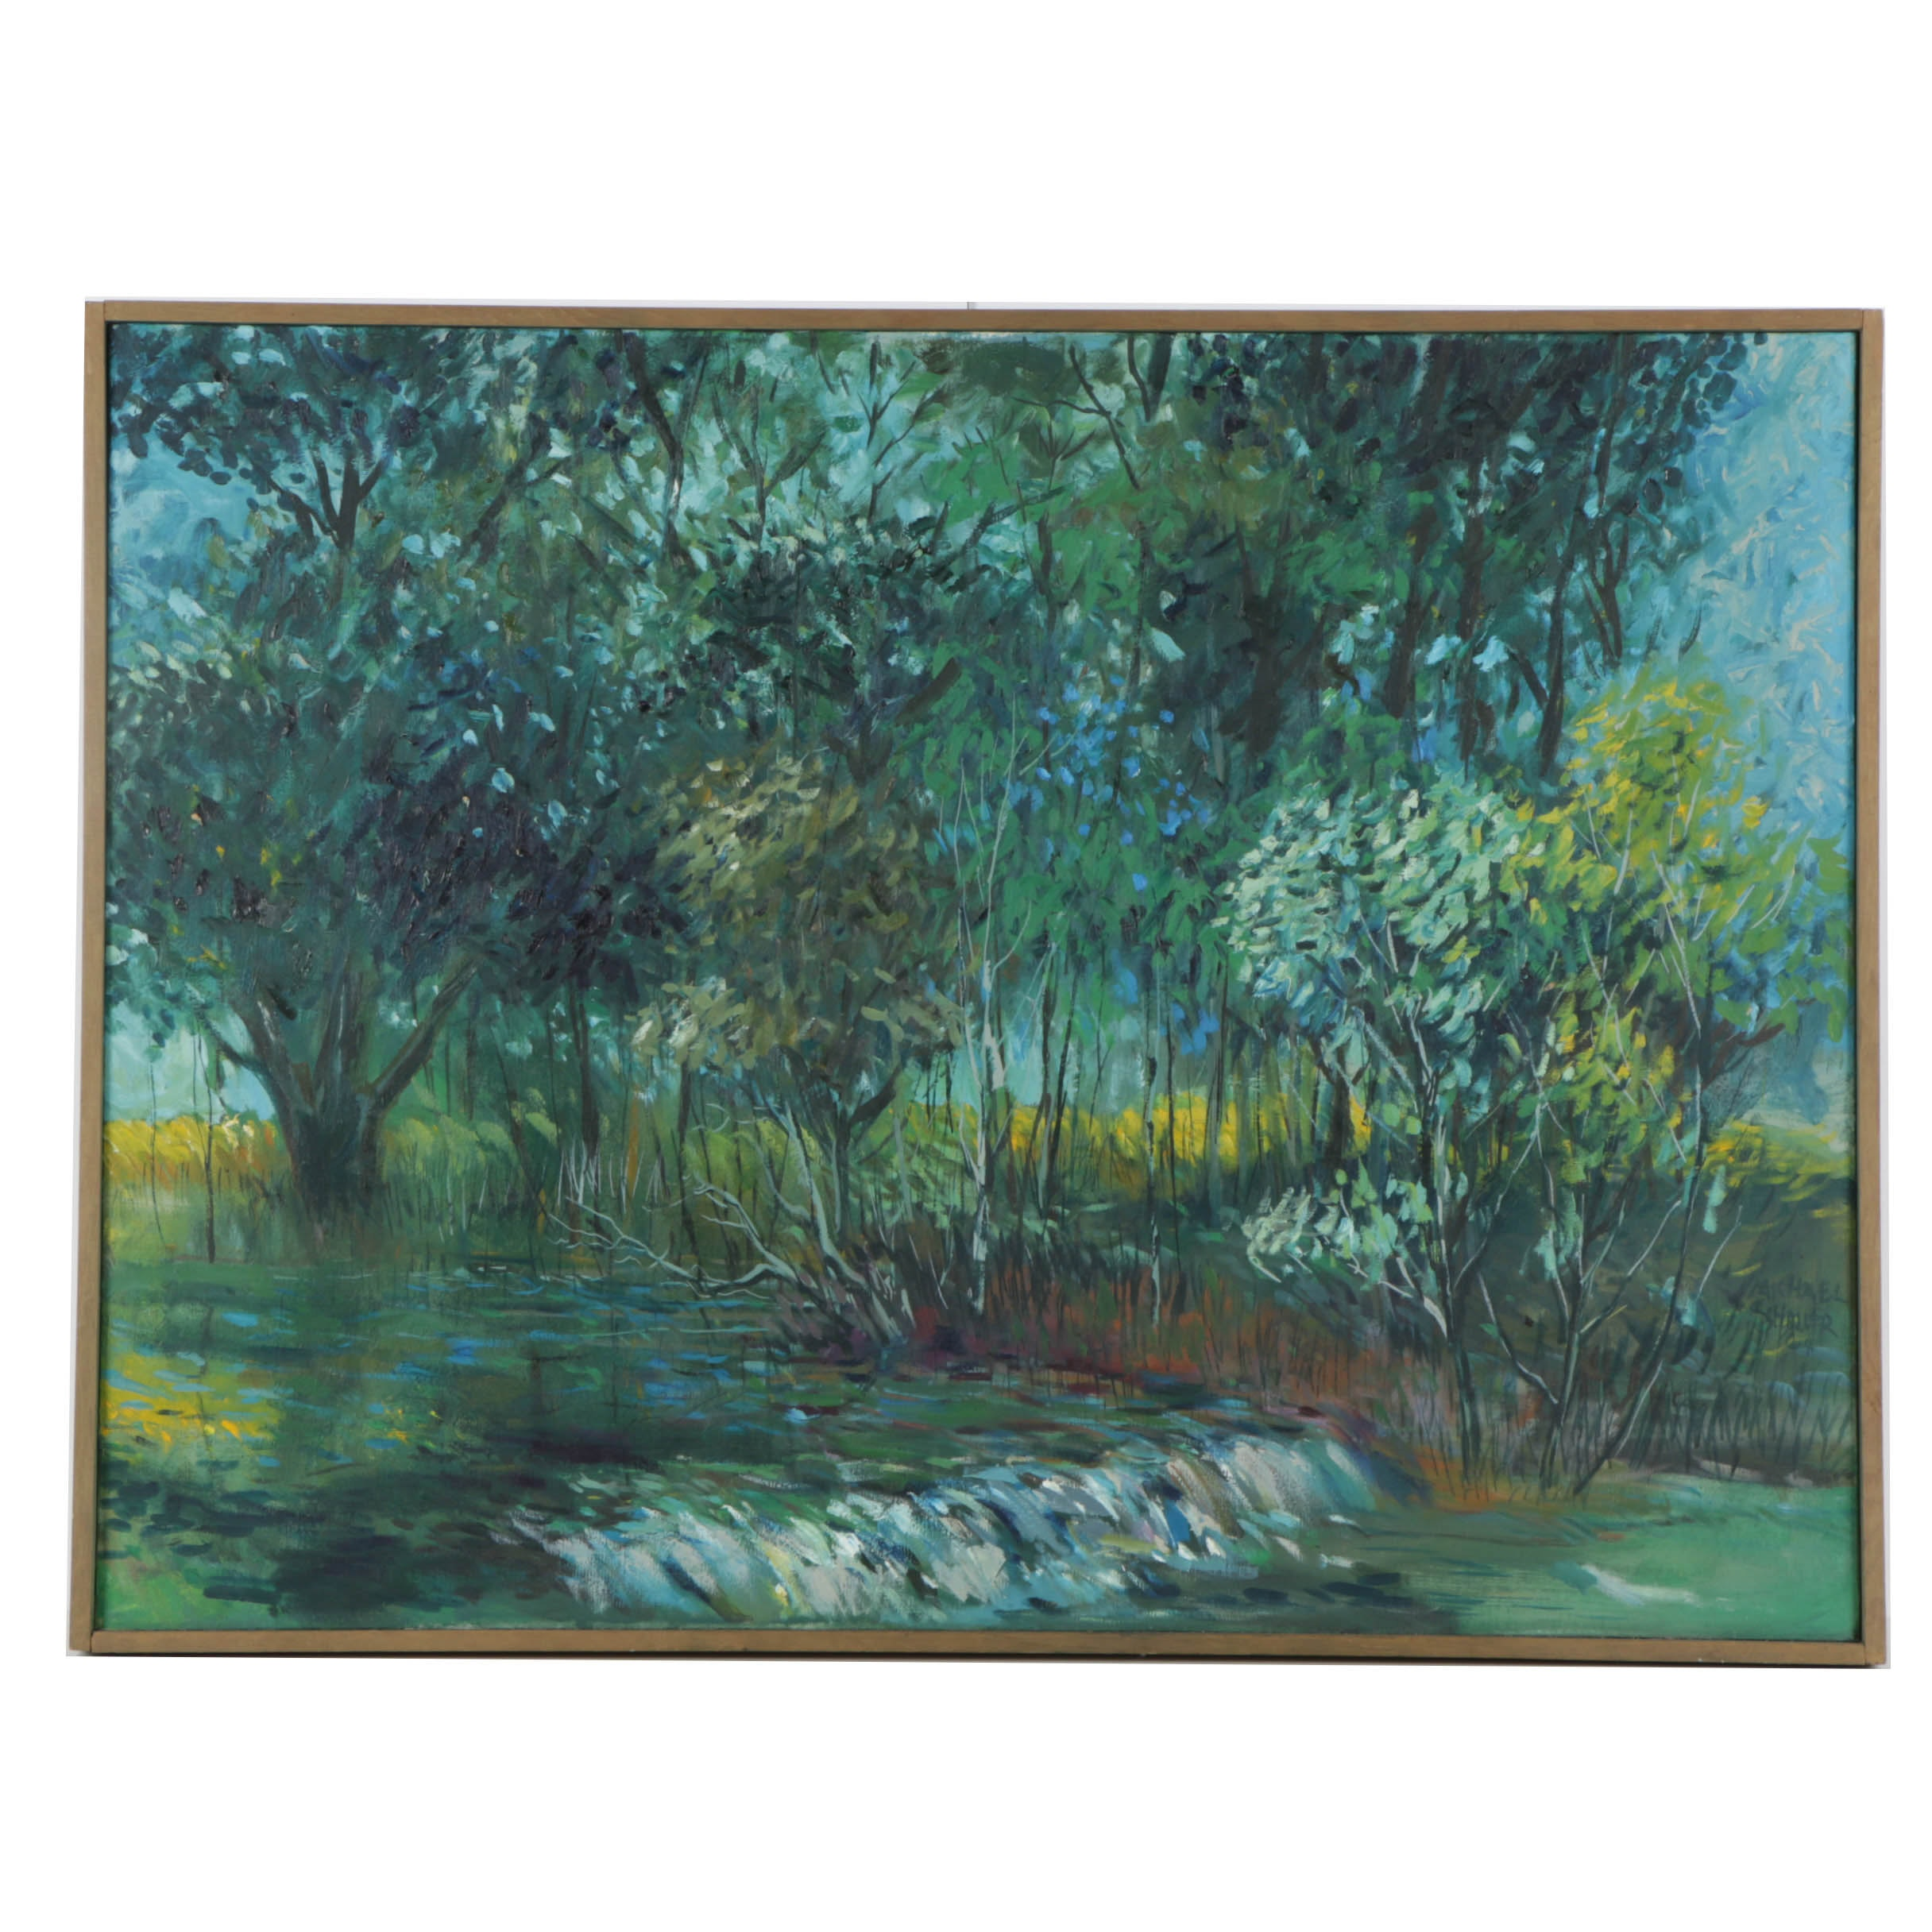 Oil Painting on Canvas of a Flooded Landscape